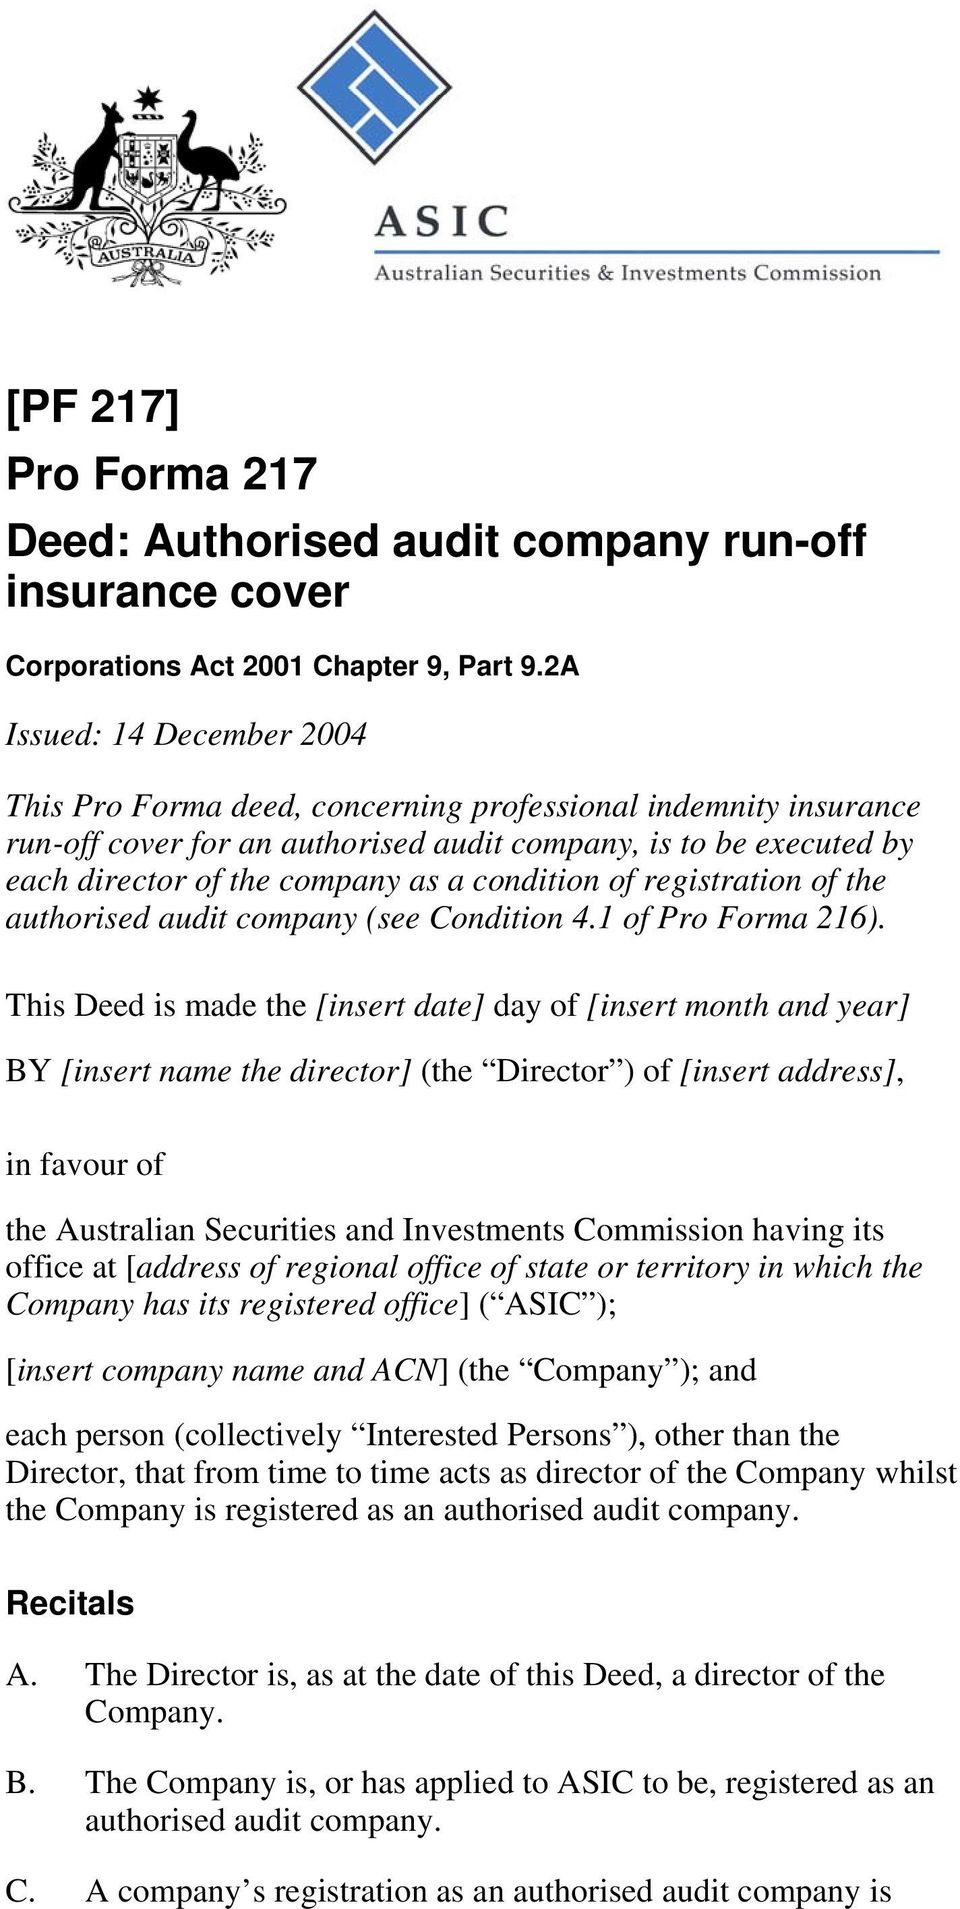 condition of registration of the authorised audit company (see Condition 4.1 of Pro Forma 216).